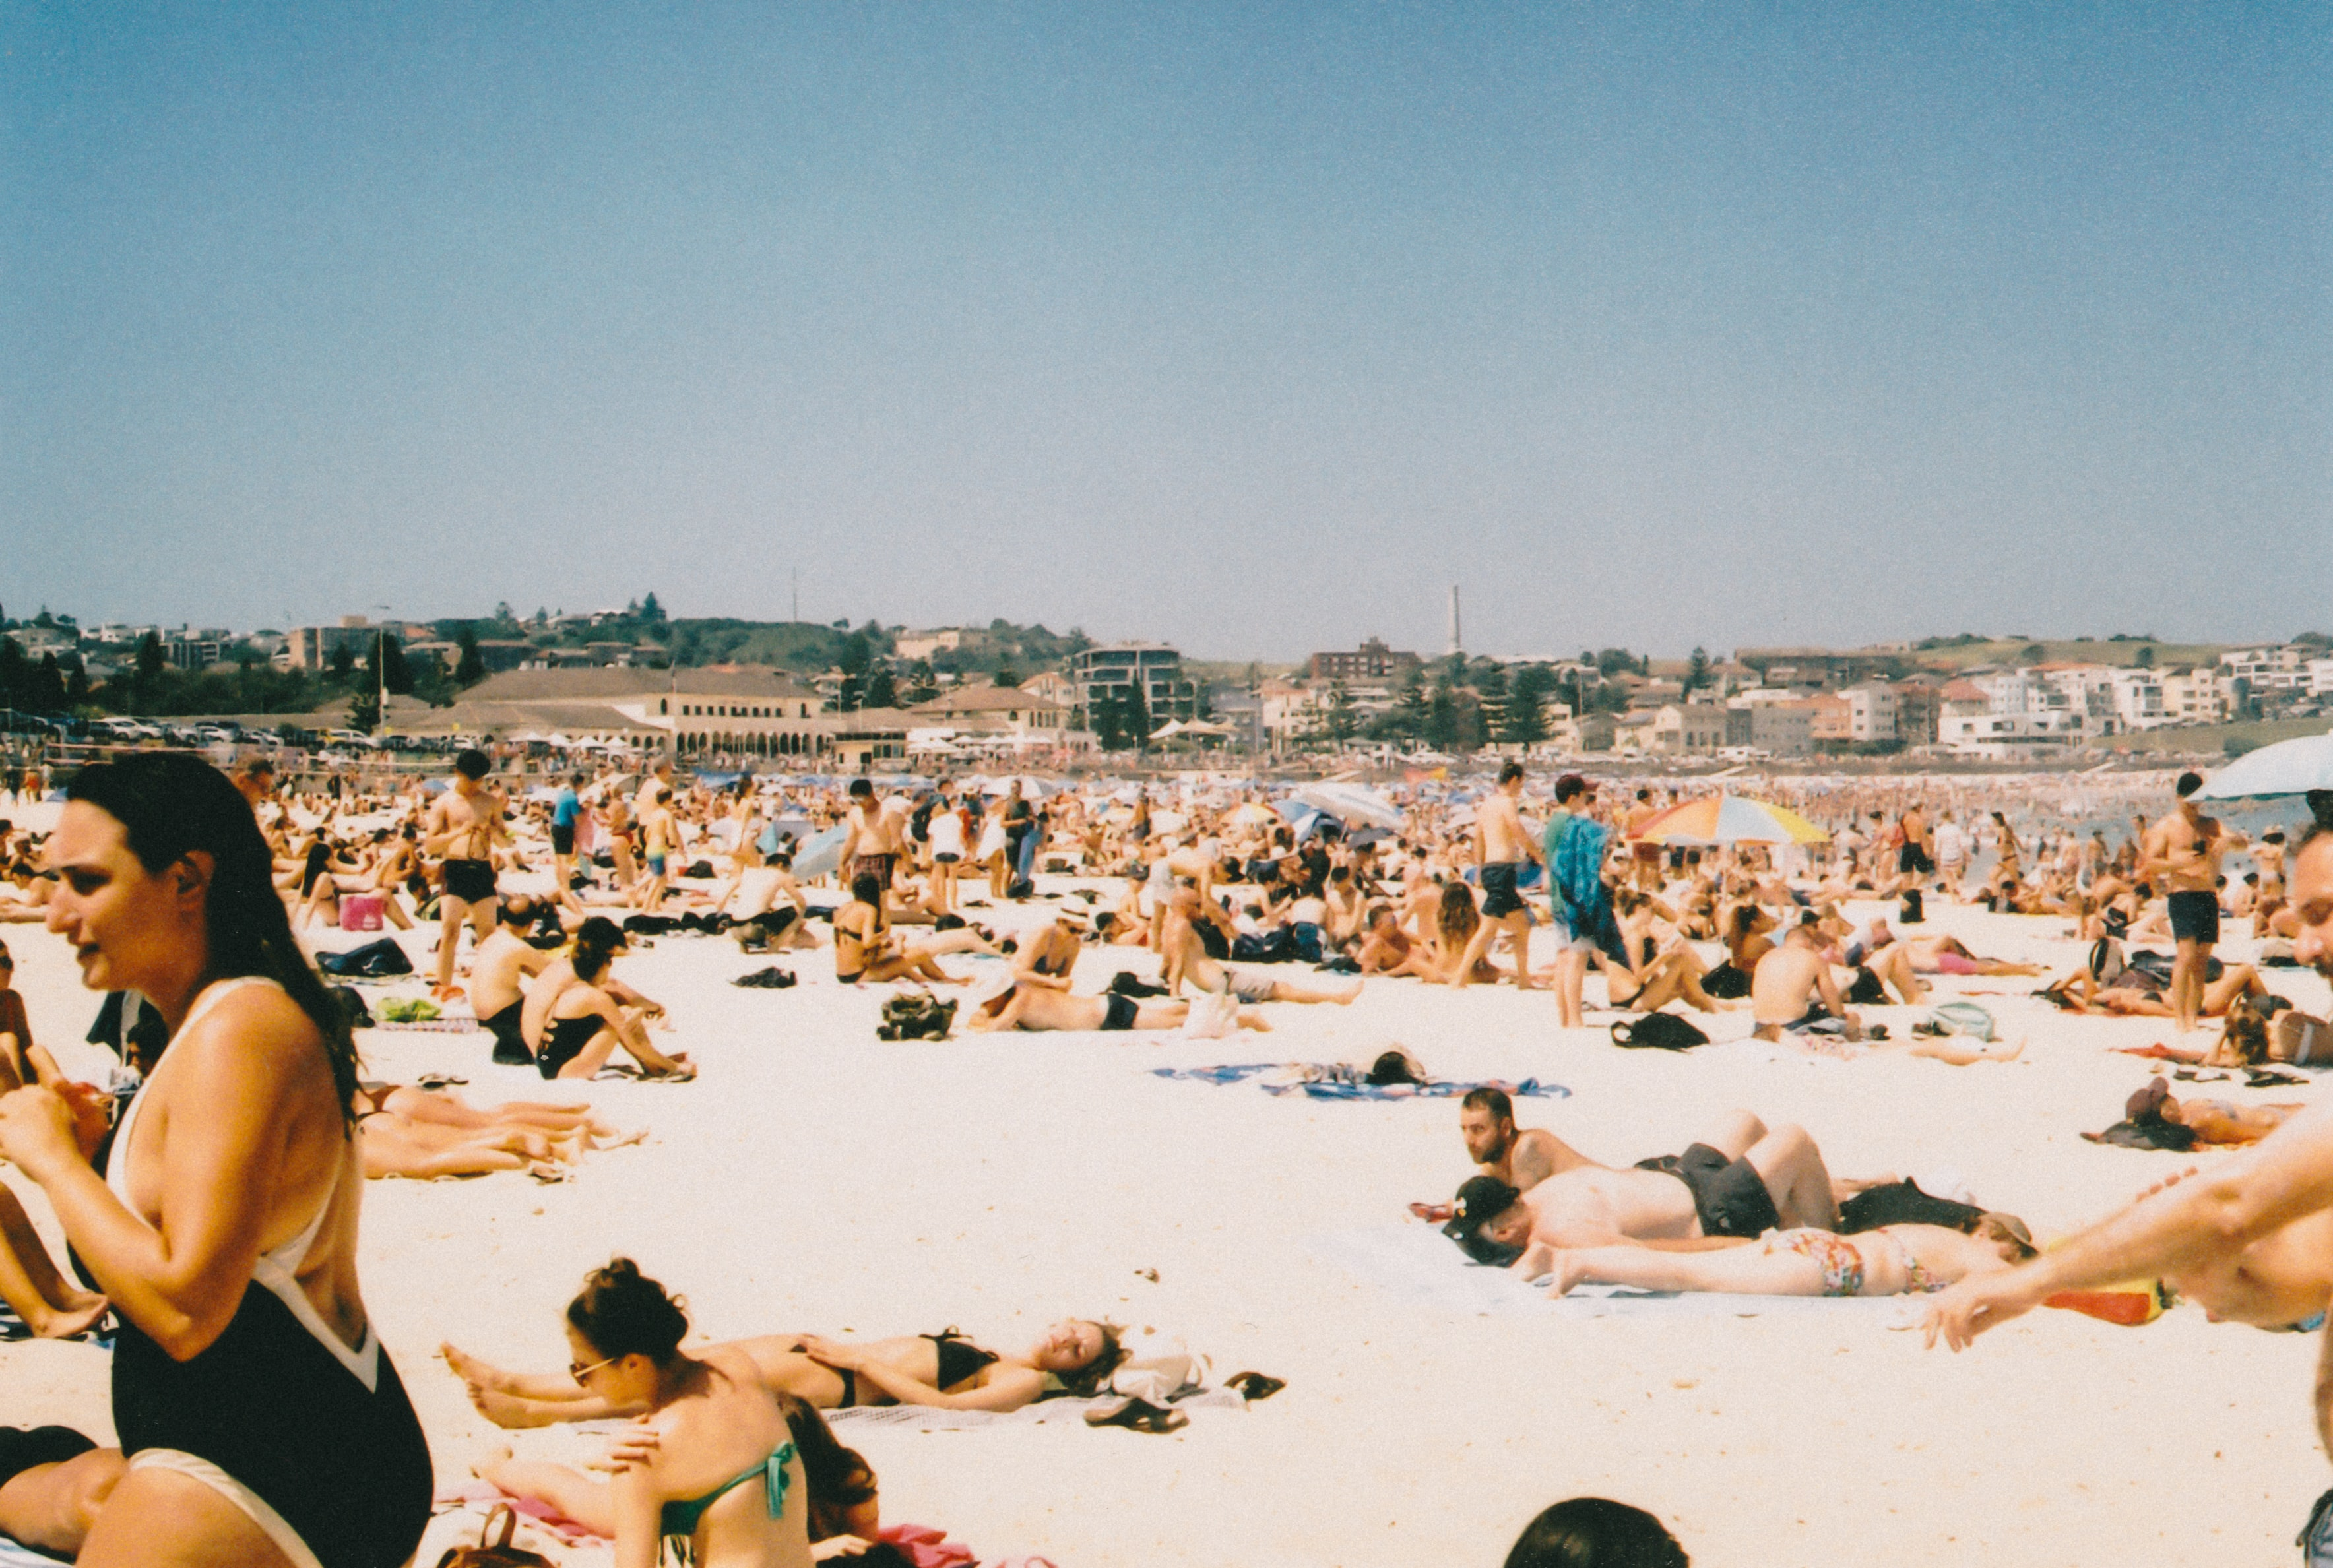 people sunbathing at beach during daytime